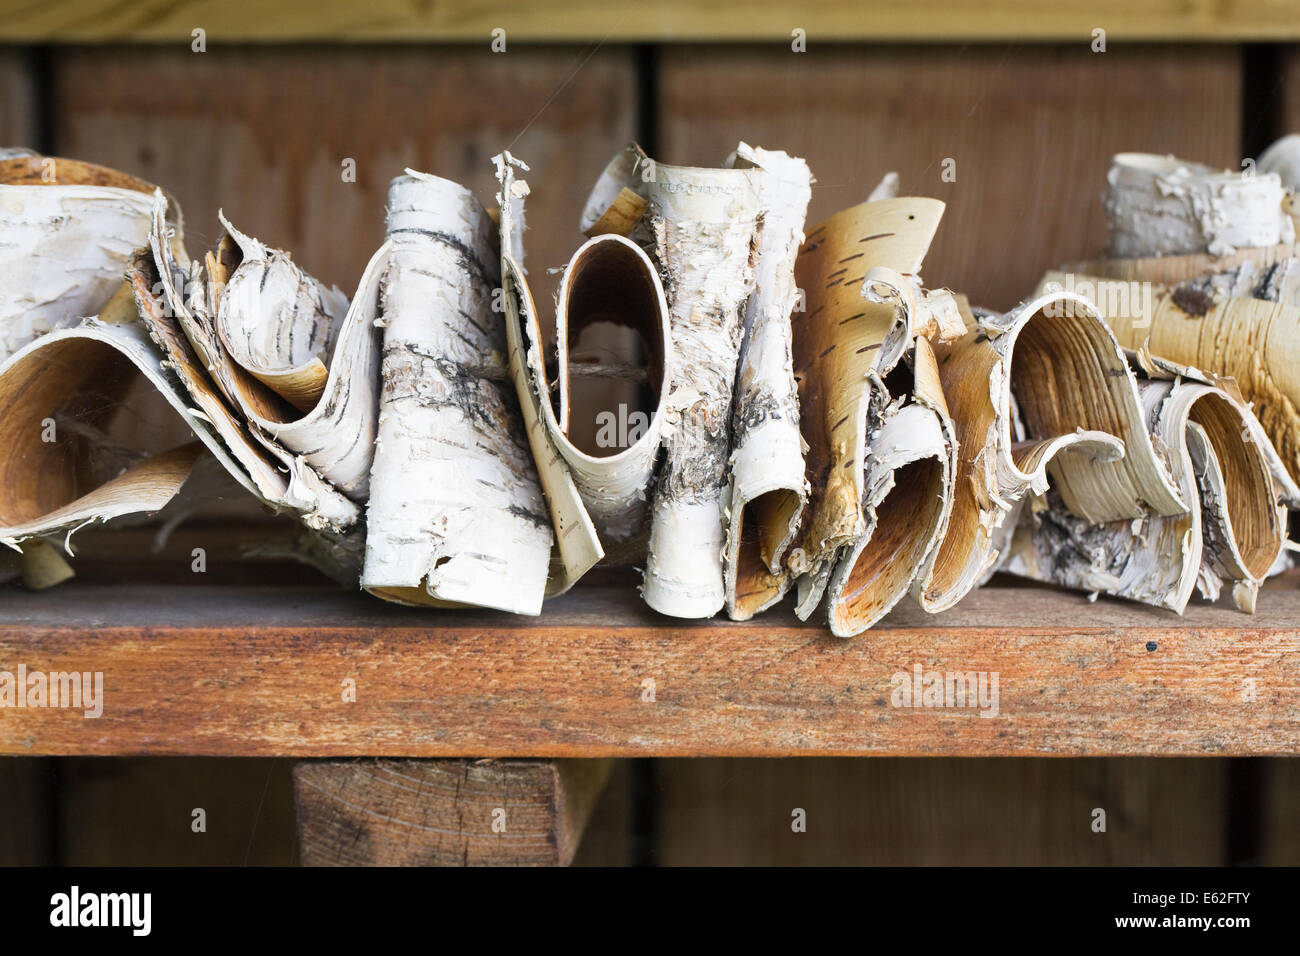 Birch Bark Insect homes. - Stock Image